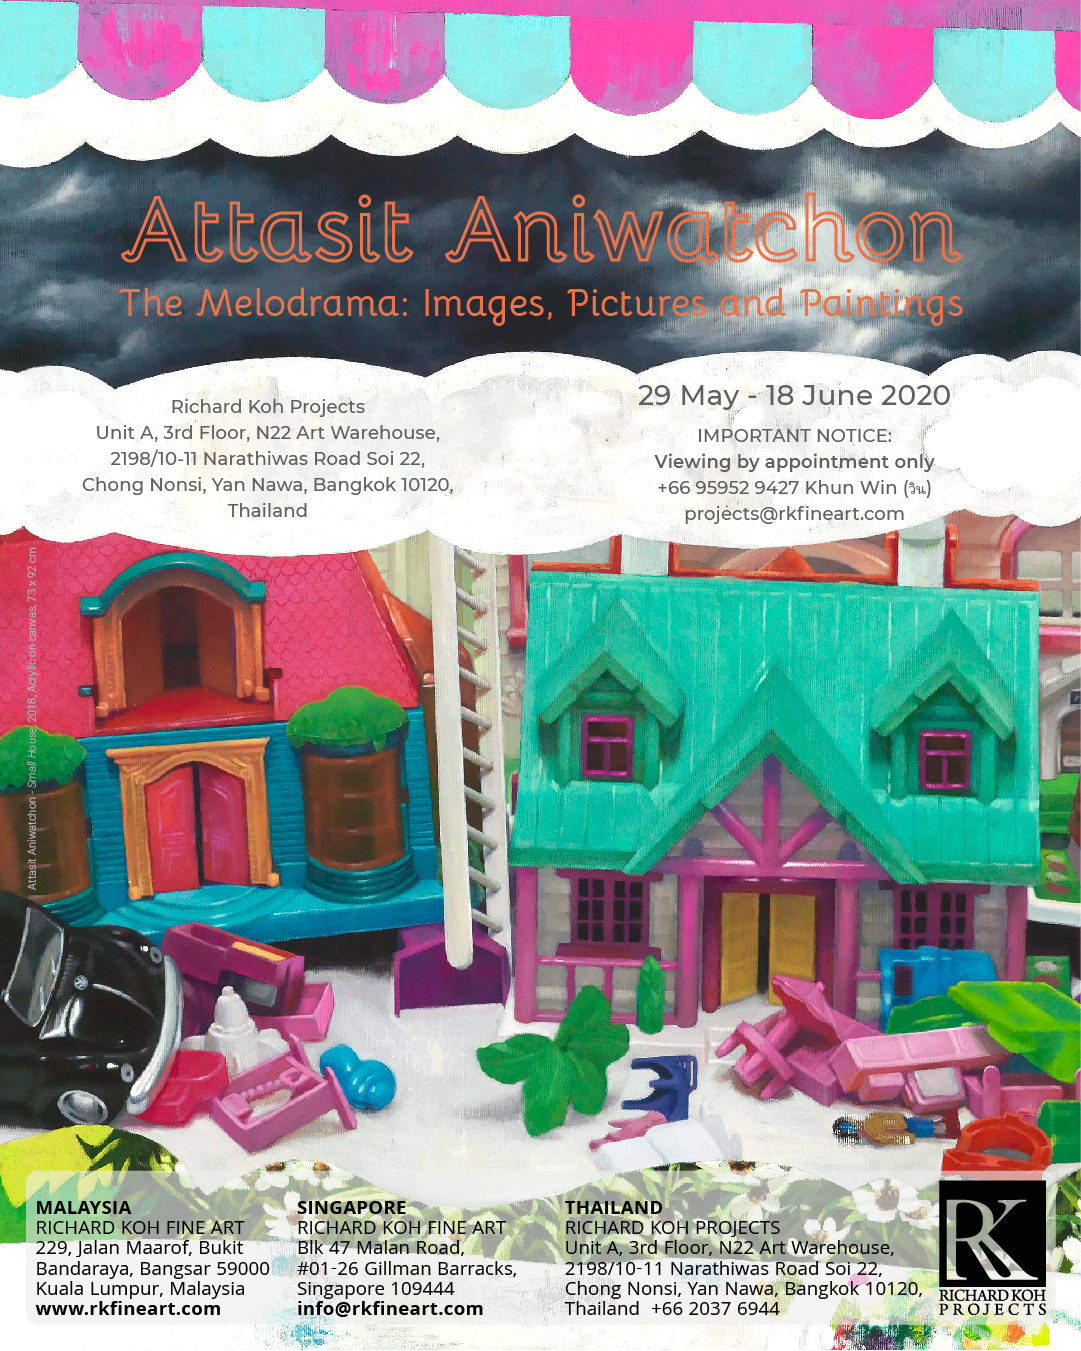 Attasit Aniwatchon – The Melodrama: Images, Pictures and Paintings